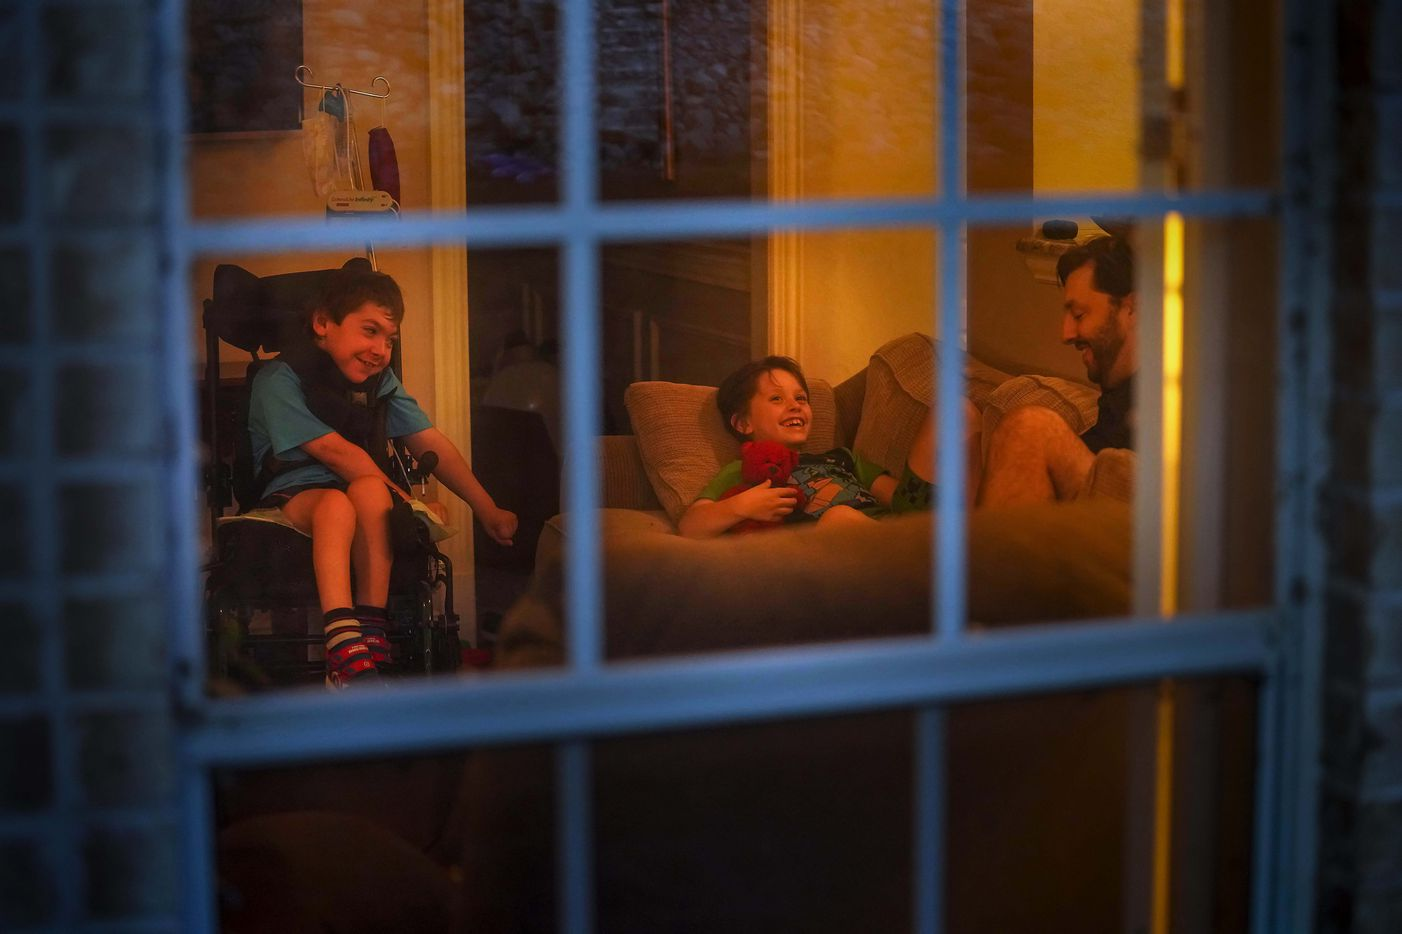 Jeff Carlton reads to his sons Jeffrey, 9, and Scotty, 11, in their living room during the family's extended COVID-19 quarantine at their home on Thursday, July 30, 2020, in Arlington, Texas. After two the two boys tested positive for COVID-19, the family says they learned to separate while the stuck together. Since the start of the pandemic, the Carltons had taken every precaution to keep their family healthy. But when the virus invaded their home, infecting their boys, they say they were unprepared.